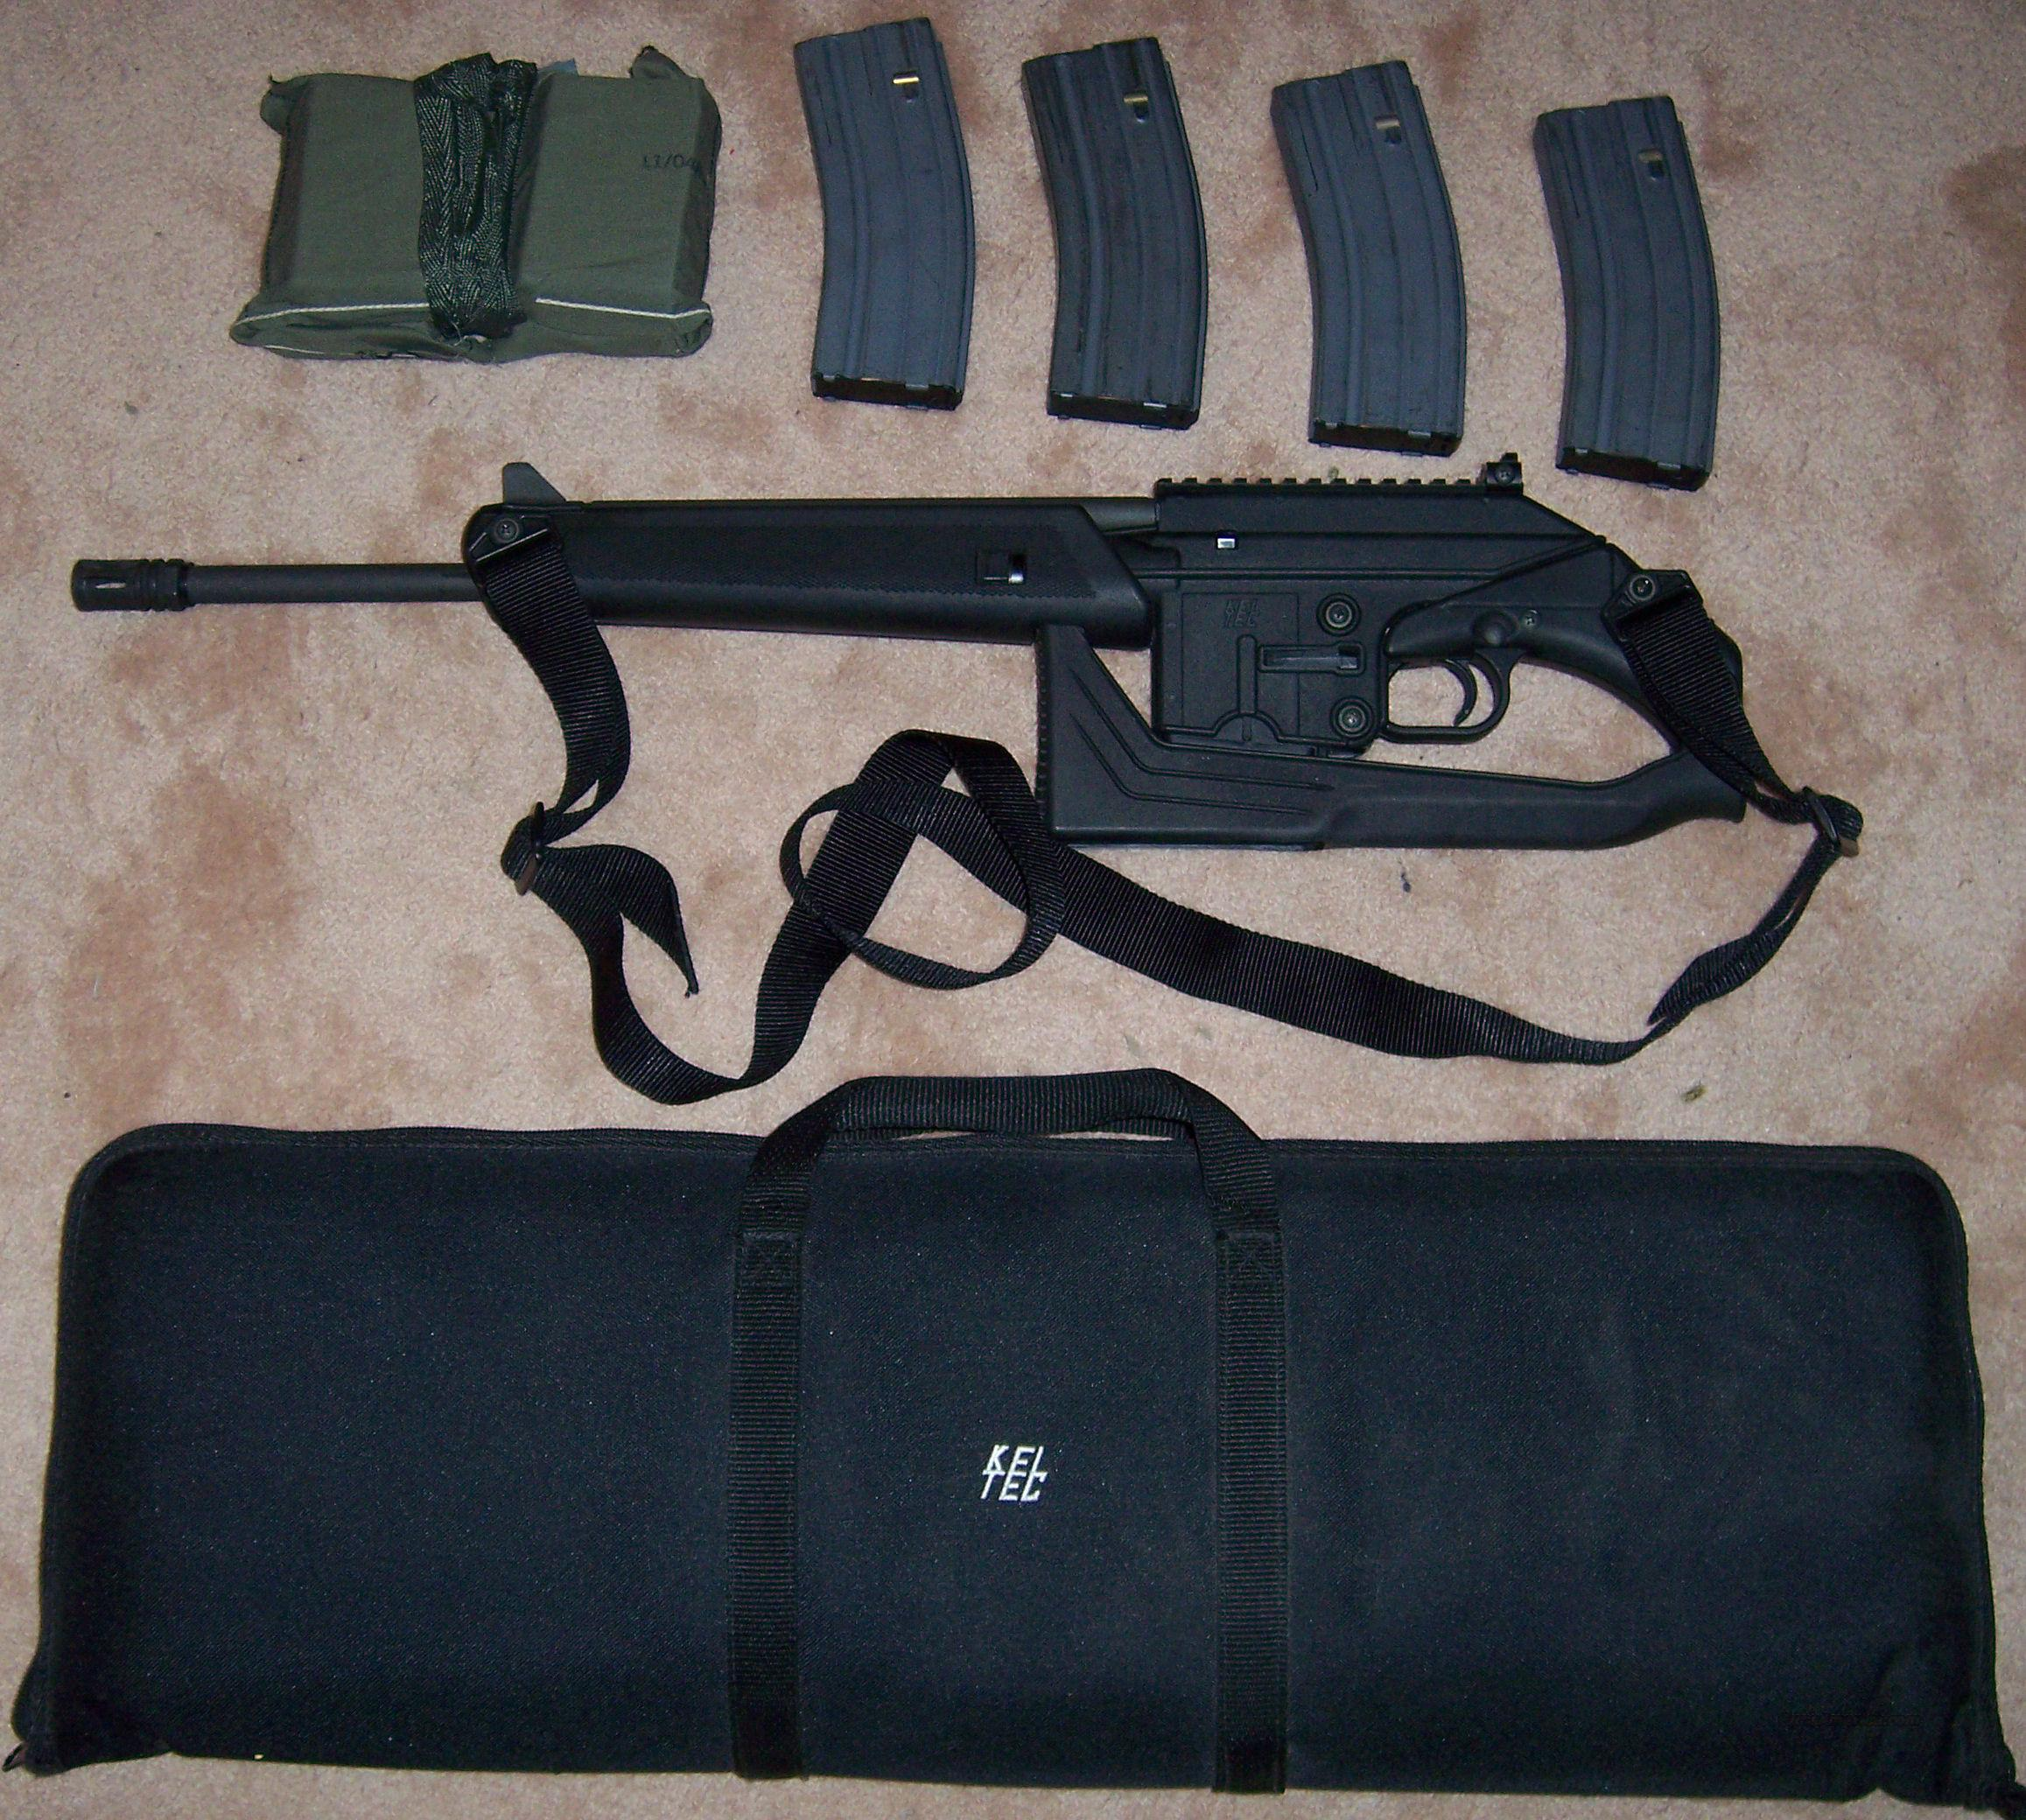 PRICE LOWERED - Kel Tec SU16C .223Rem/5.56NATO, Case, Sling, Flash Suppressor  Guns > Rifles > Kel-Tec Rifles